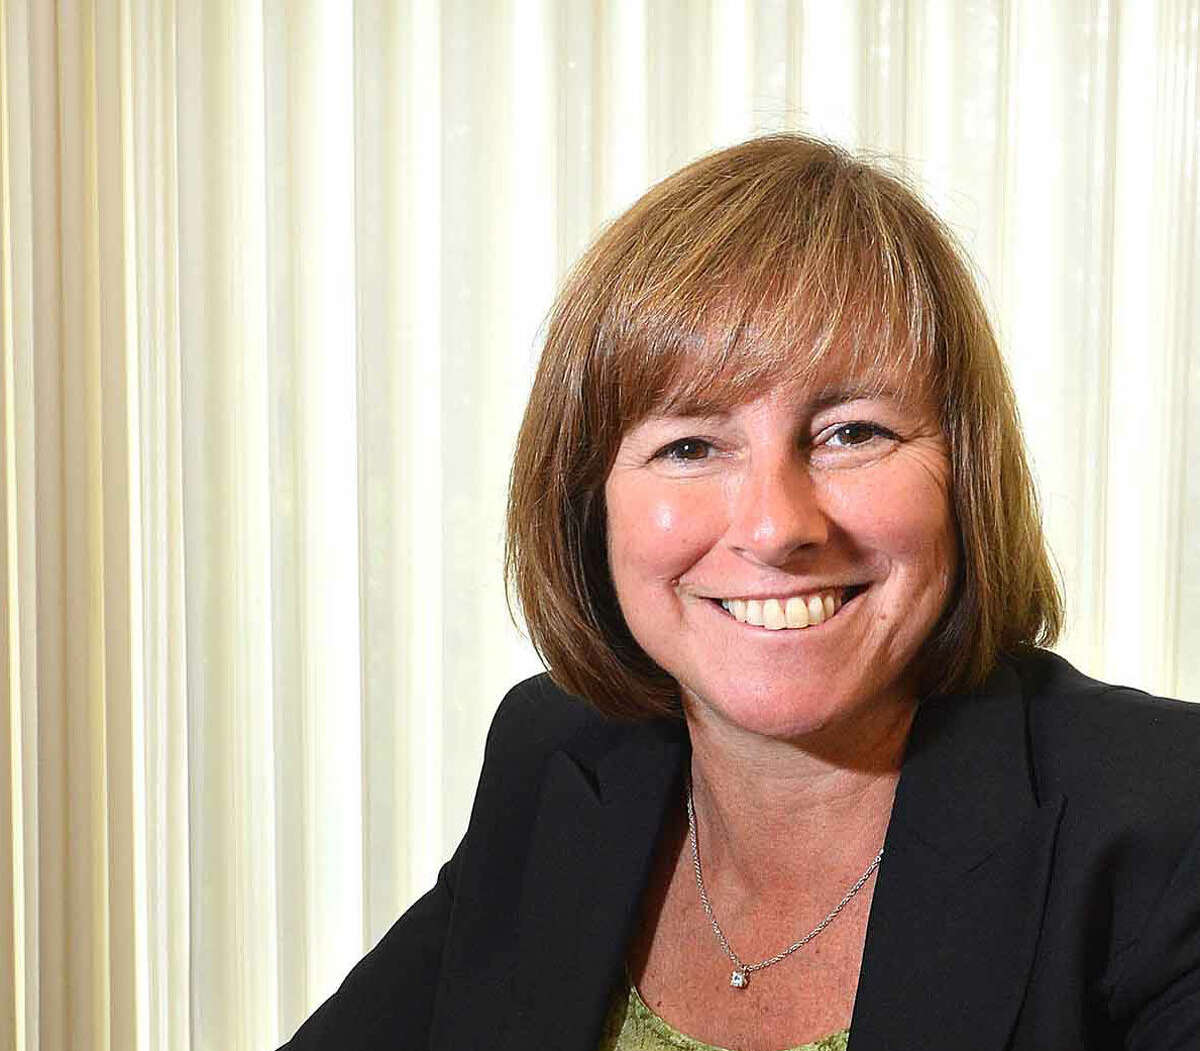 Tracey Golden has joined the board of directors for the United Way of Coastal Fairfield County. Golden works as a partner with Deloitte & Touche in Wilton.